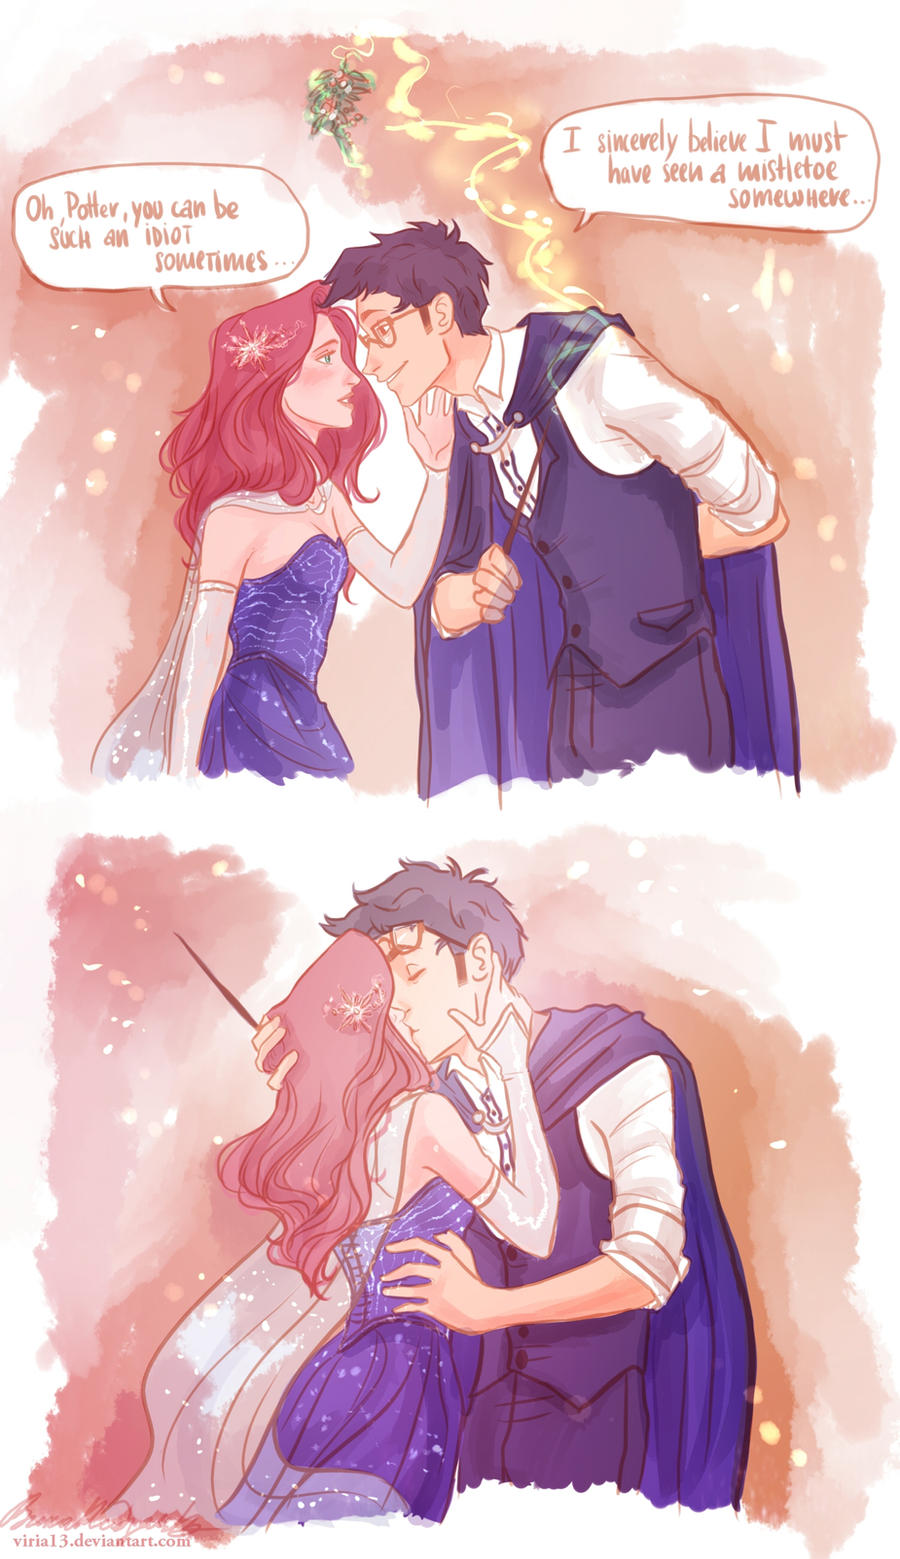 I must have seen a mistletoe somewhere.. by viria13